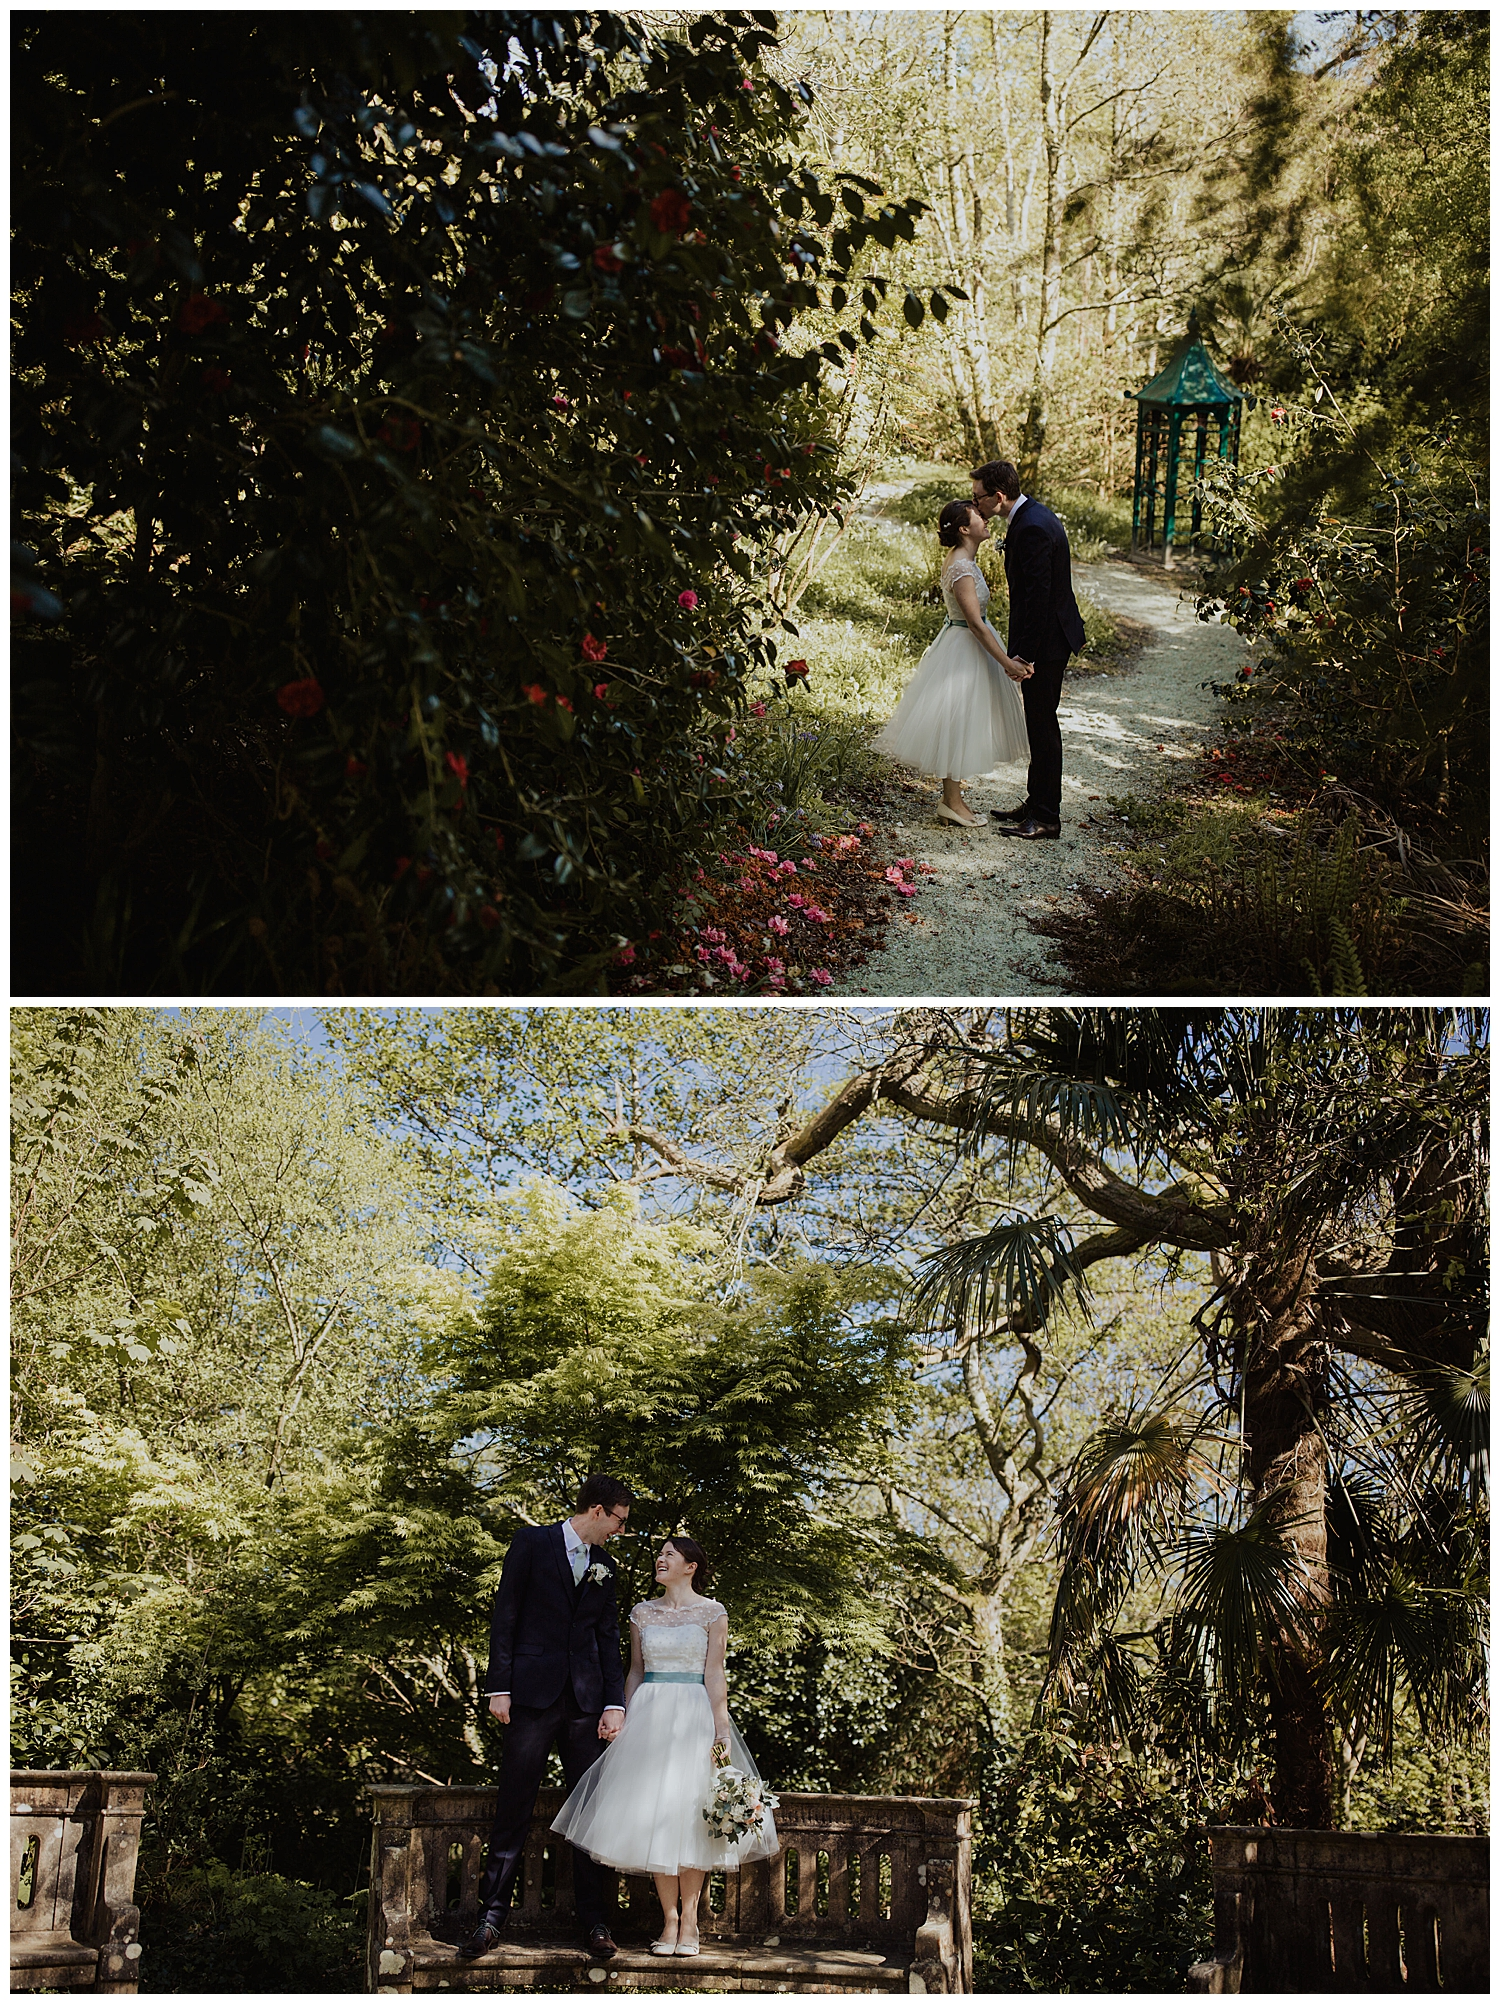 ballinacurra_house_wedding_cork_wedding_venue_wedding_photographer_ireland_livia_figueiredo_30.jpg